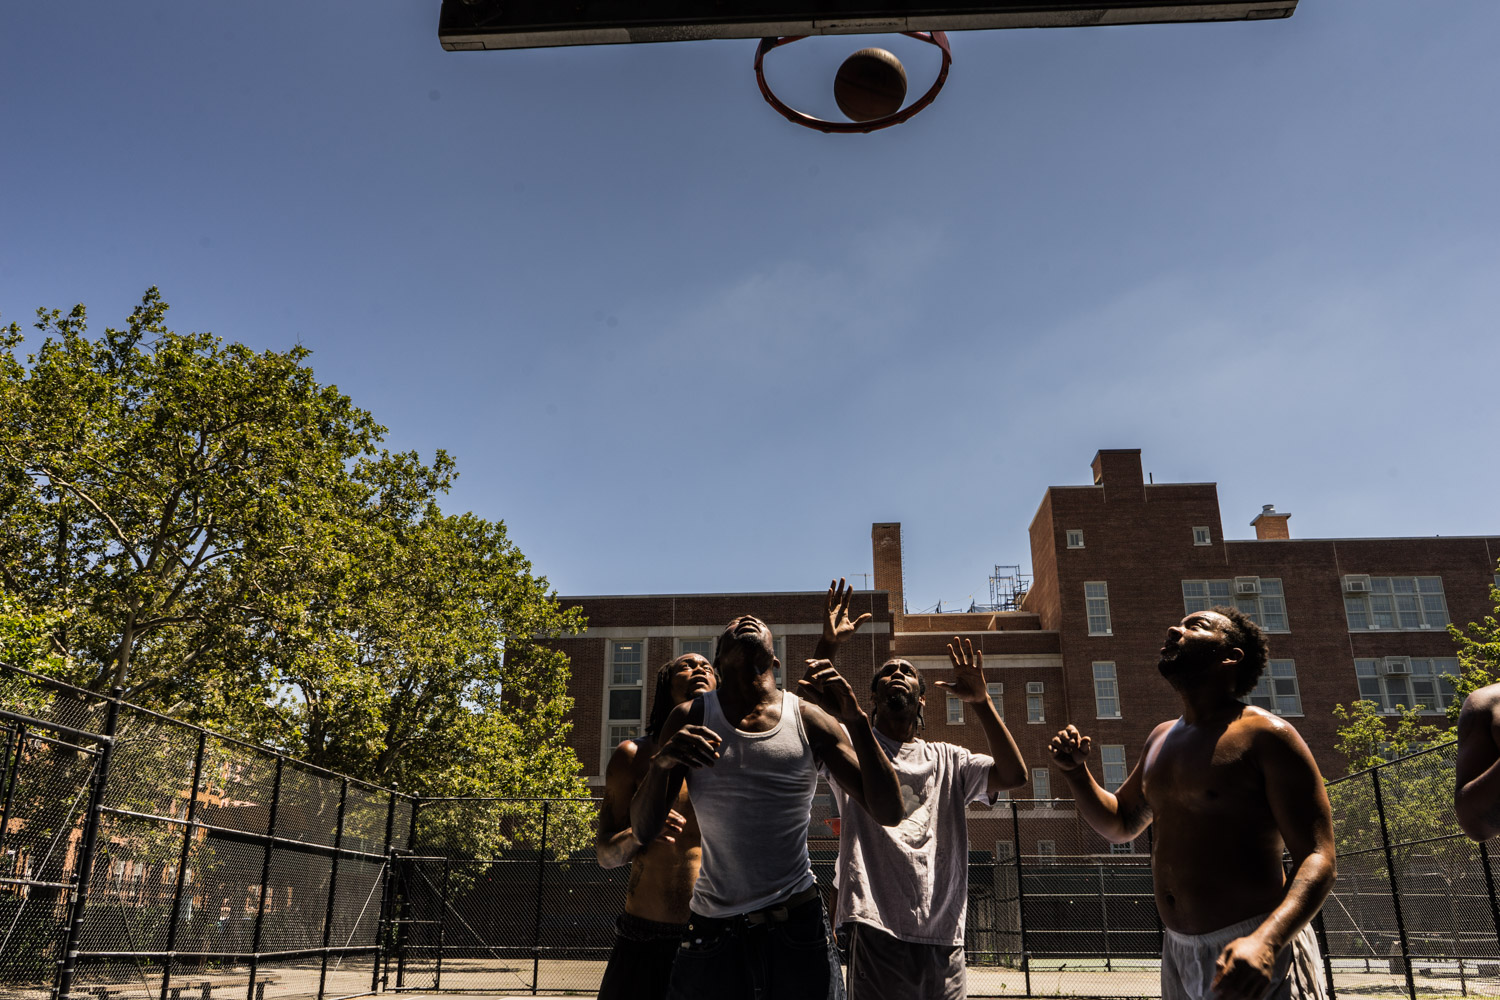 Pop Zombie (left rear) and Fatboy (right front) play streetball with friends in Bedstuy, Brooklyn.